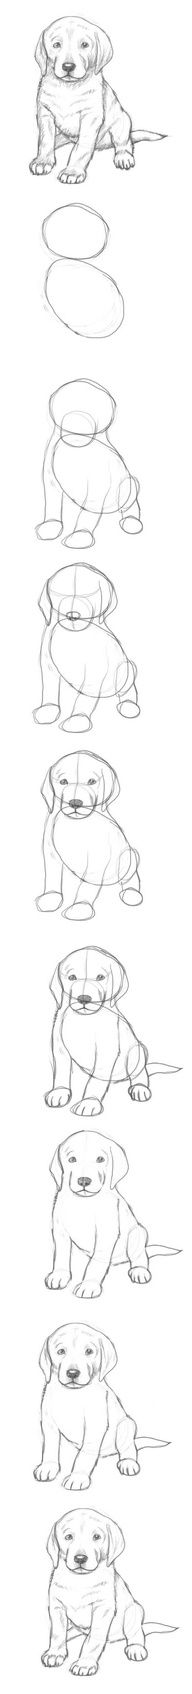 how to draw a puppy                                                                                                                                                     More